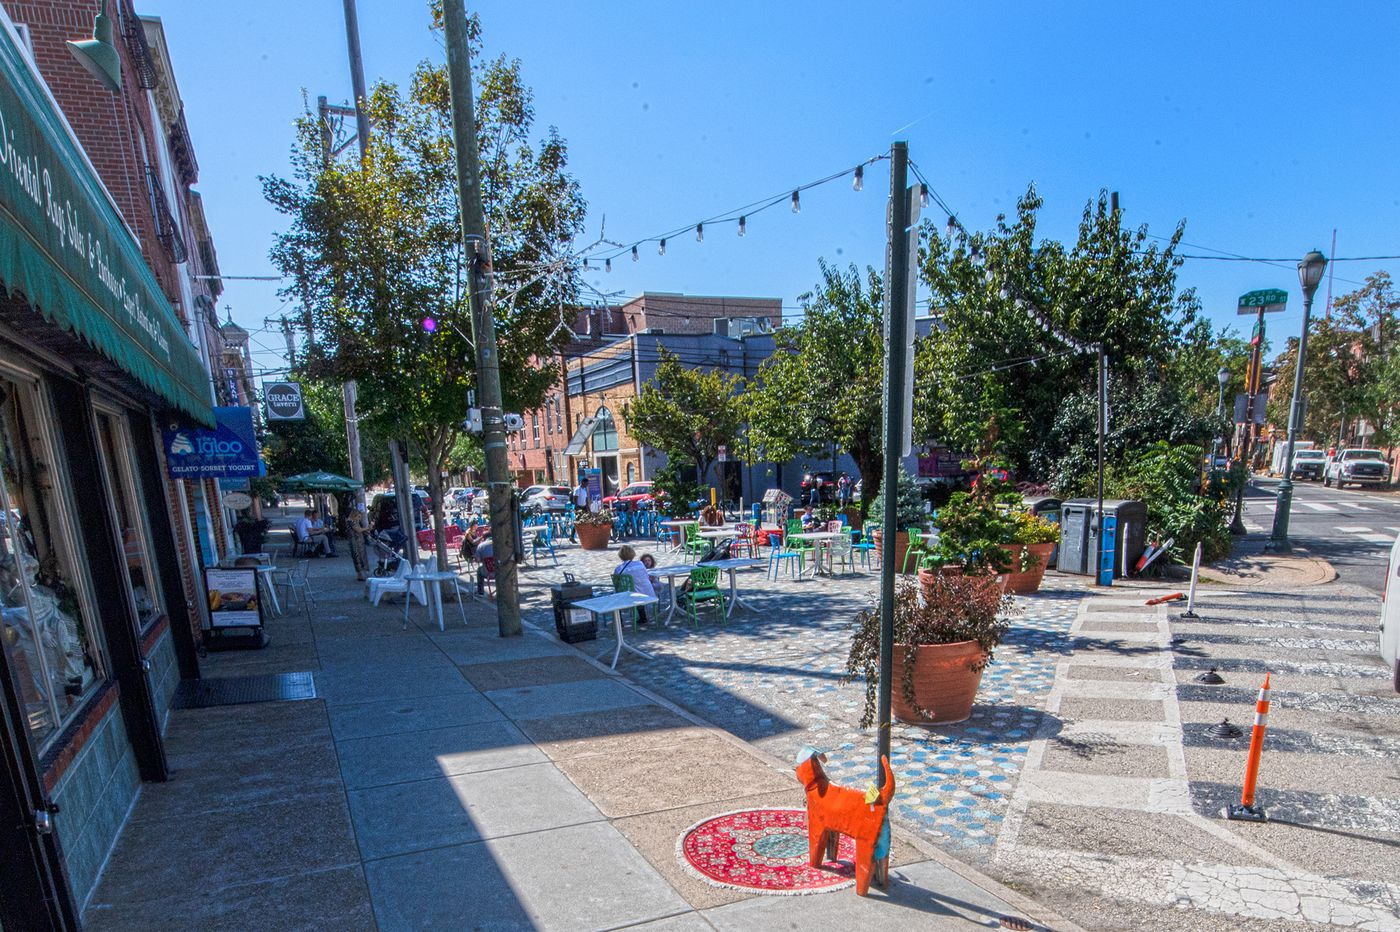 When it comes to adapting street space for pedestrians, Philly needs a better road map